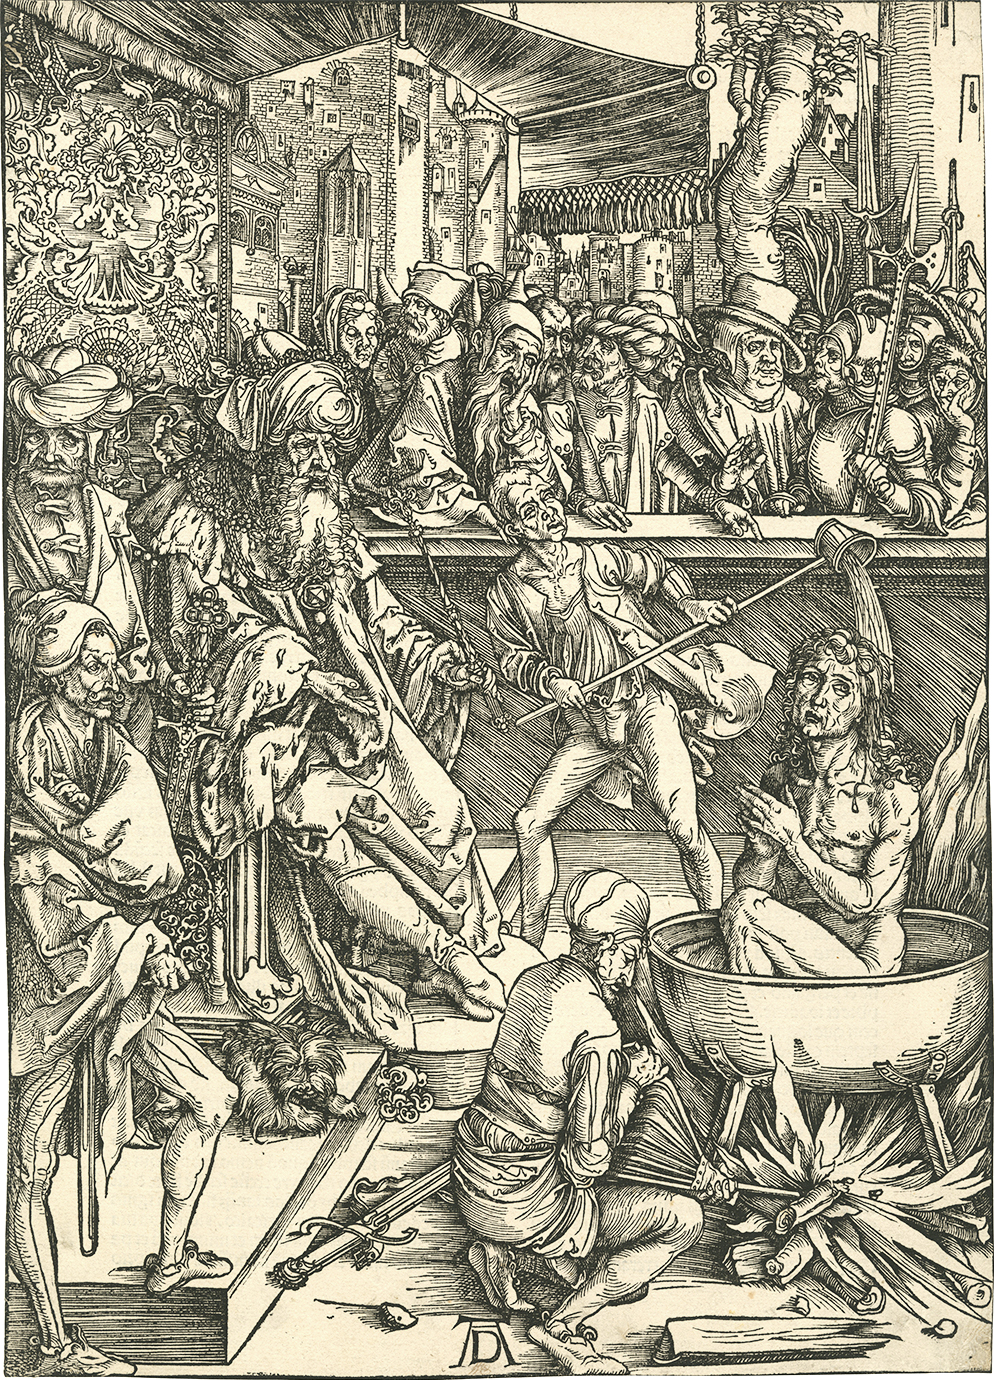 Albrecht Dürer, The Torture of St. John the Evangelist from The Apocalypse,  The Latin Text Edition of 1498